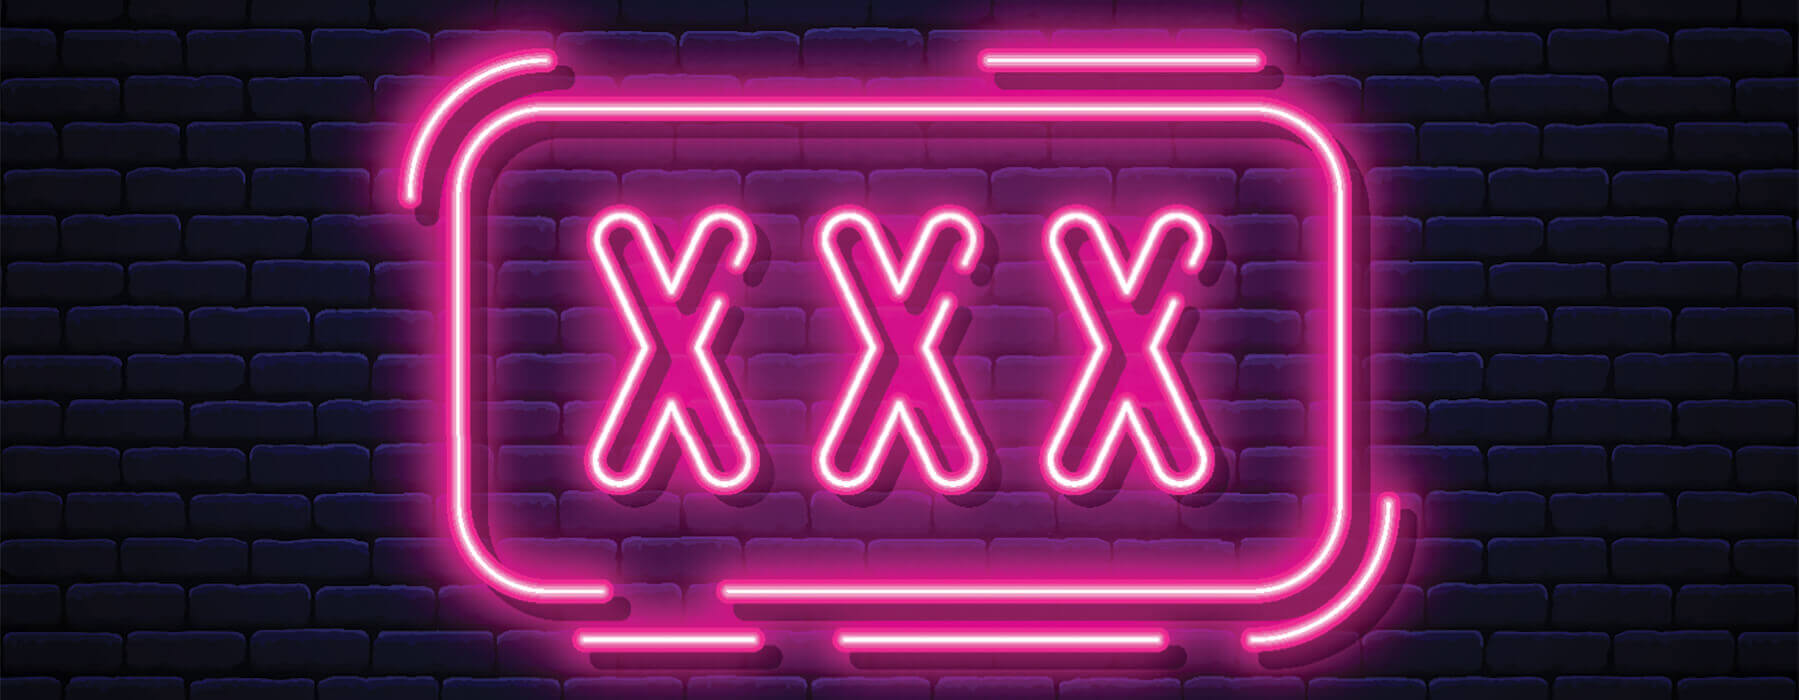 Register .XXX Domains - The Domain for the Adult Industry